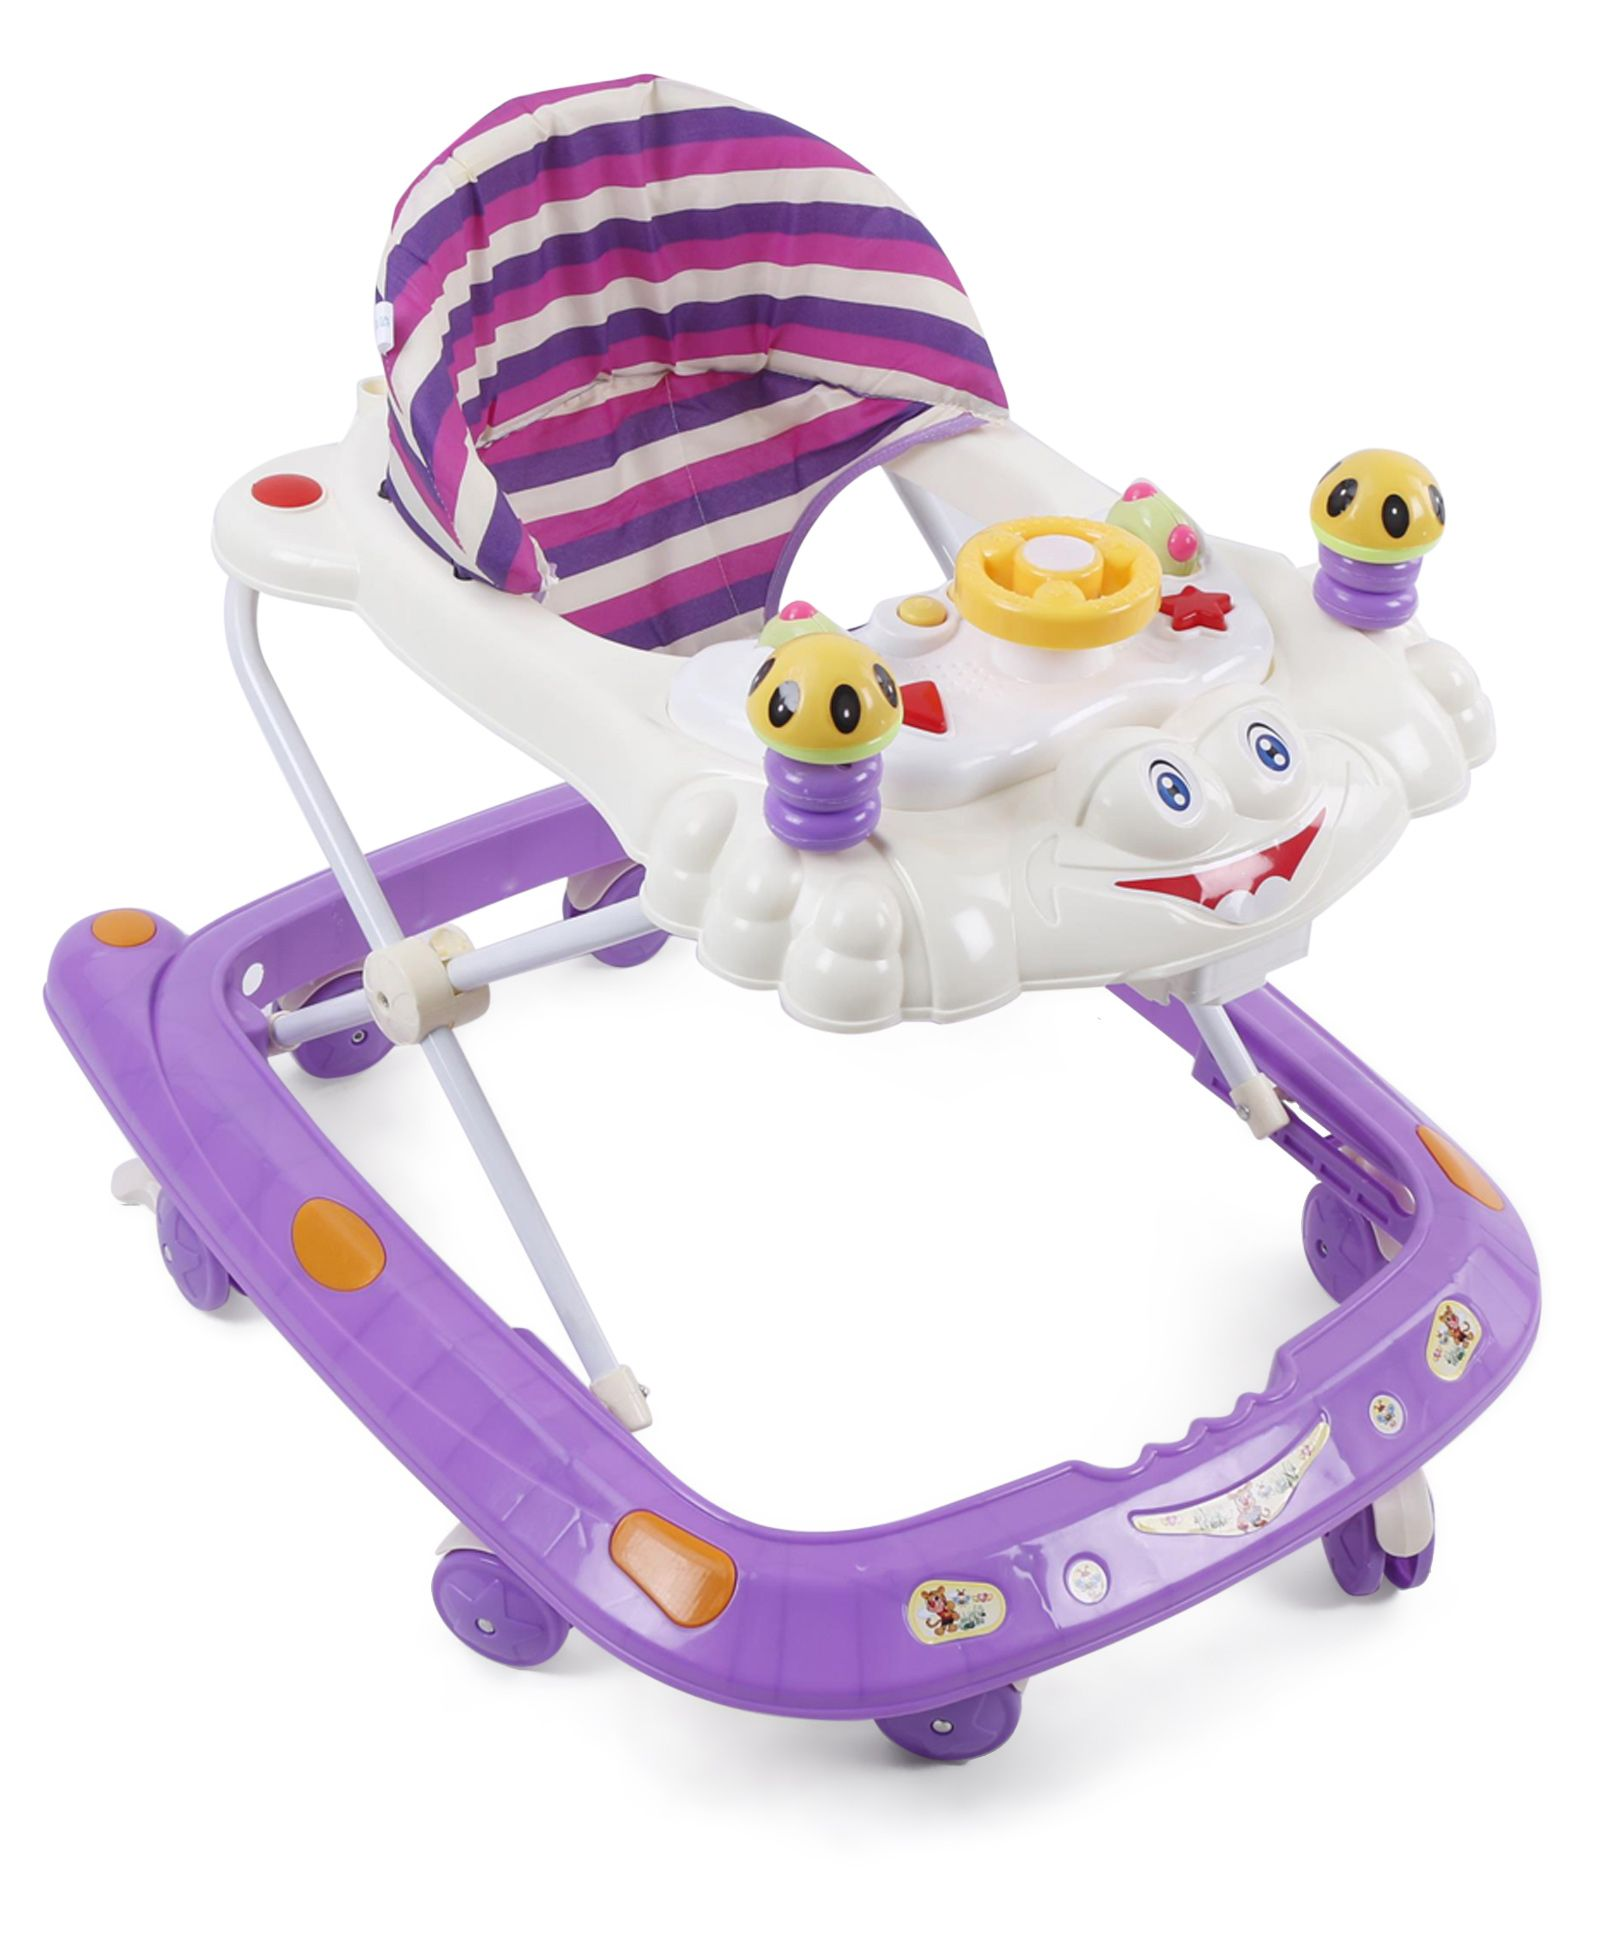 Baby Musical Walker With Cushioned Seat - Purple Cream